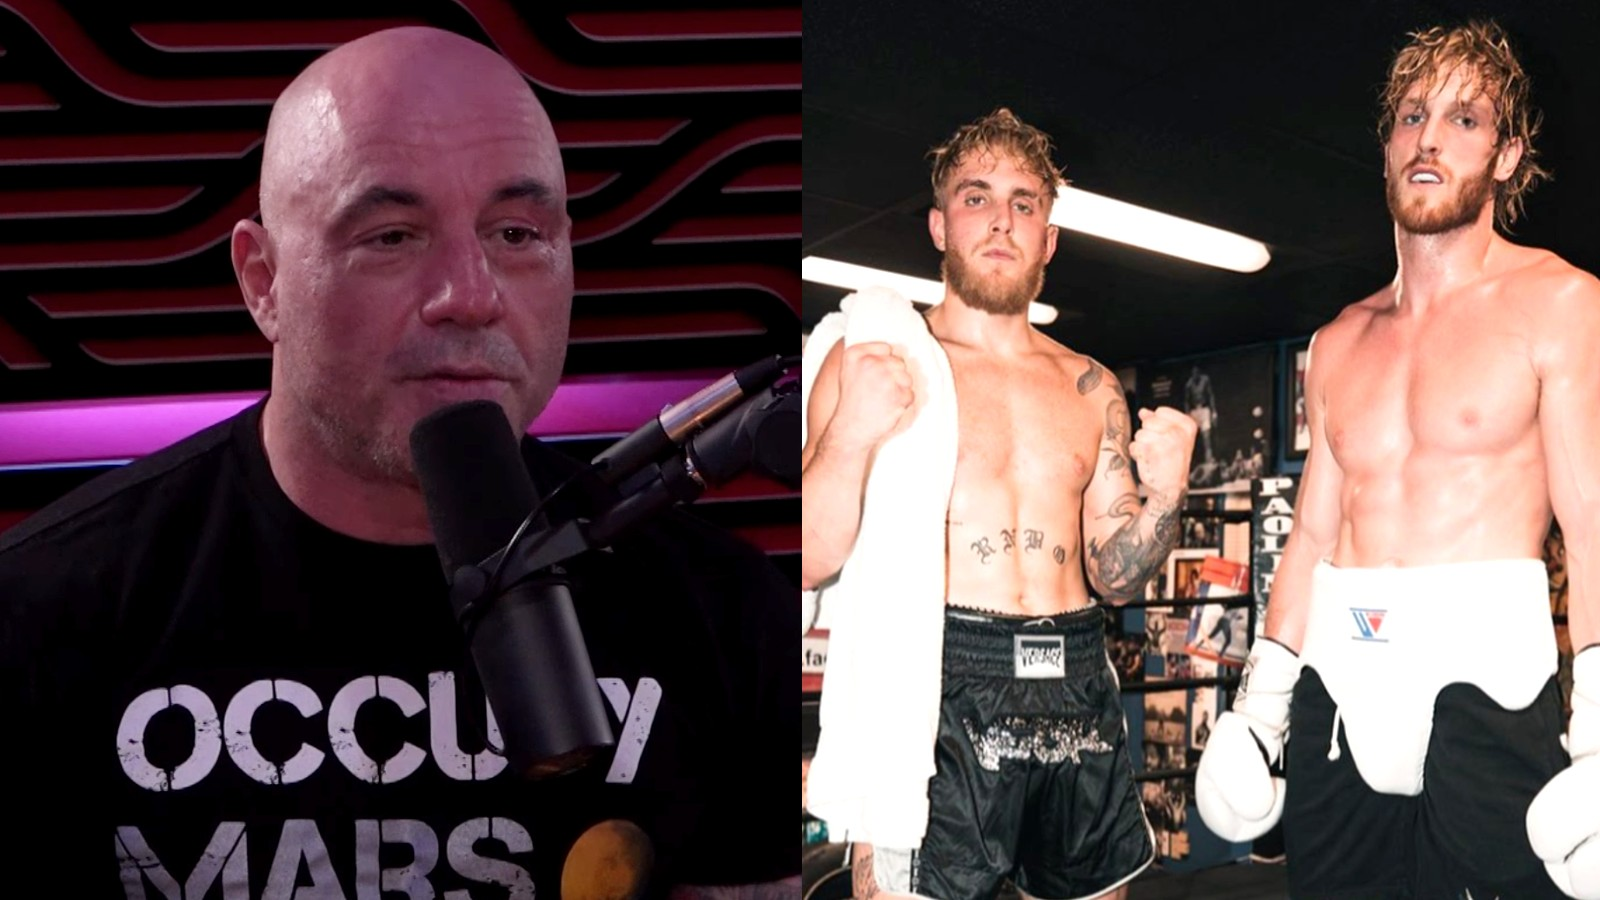 Joe Rogan on his podcast next to image of Paul brothers in training gear